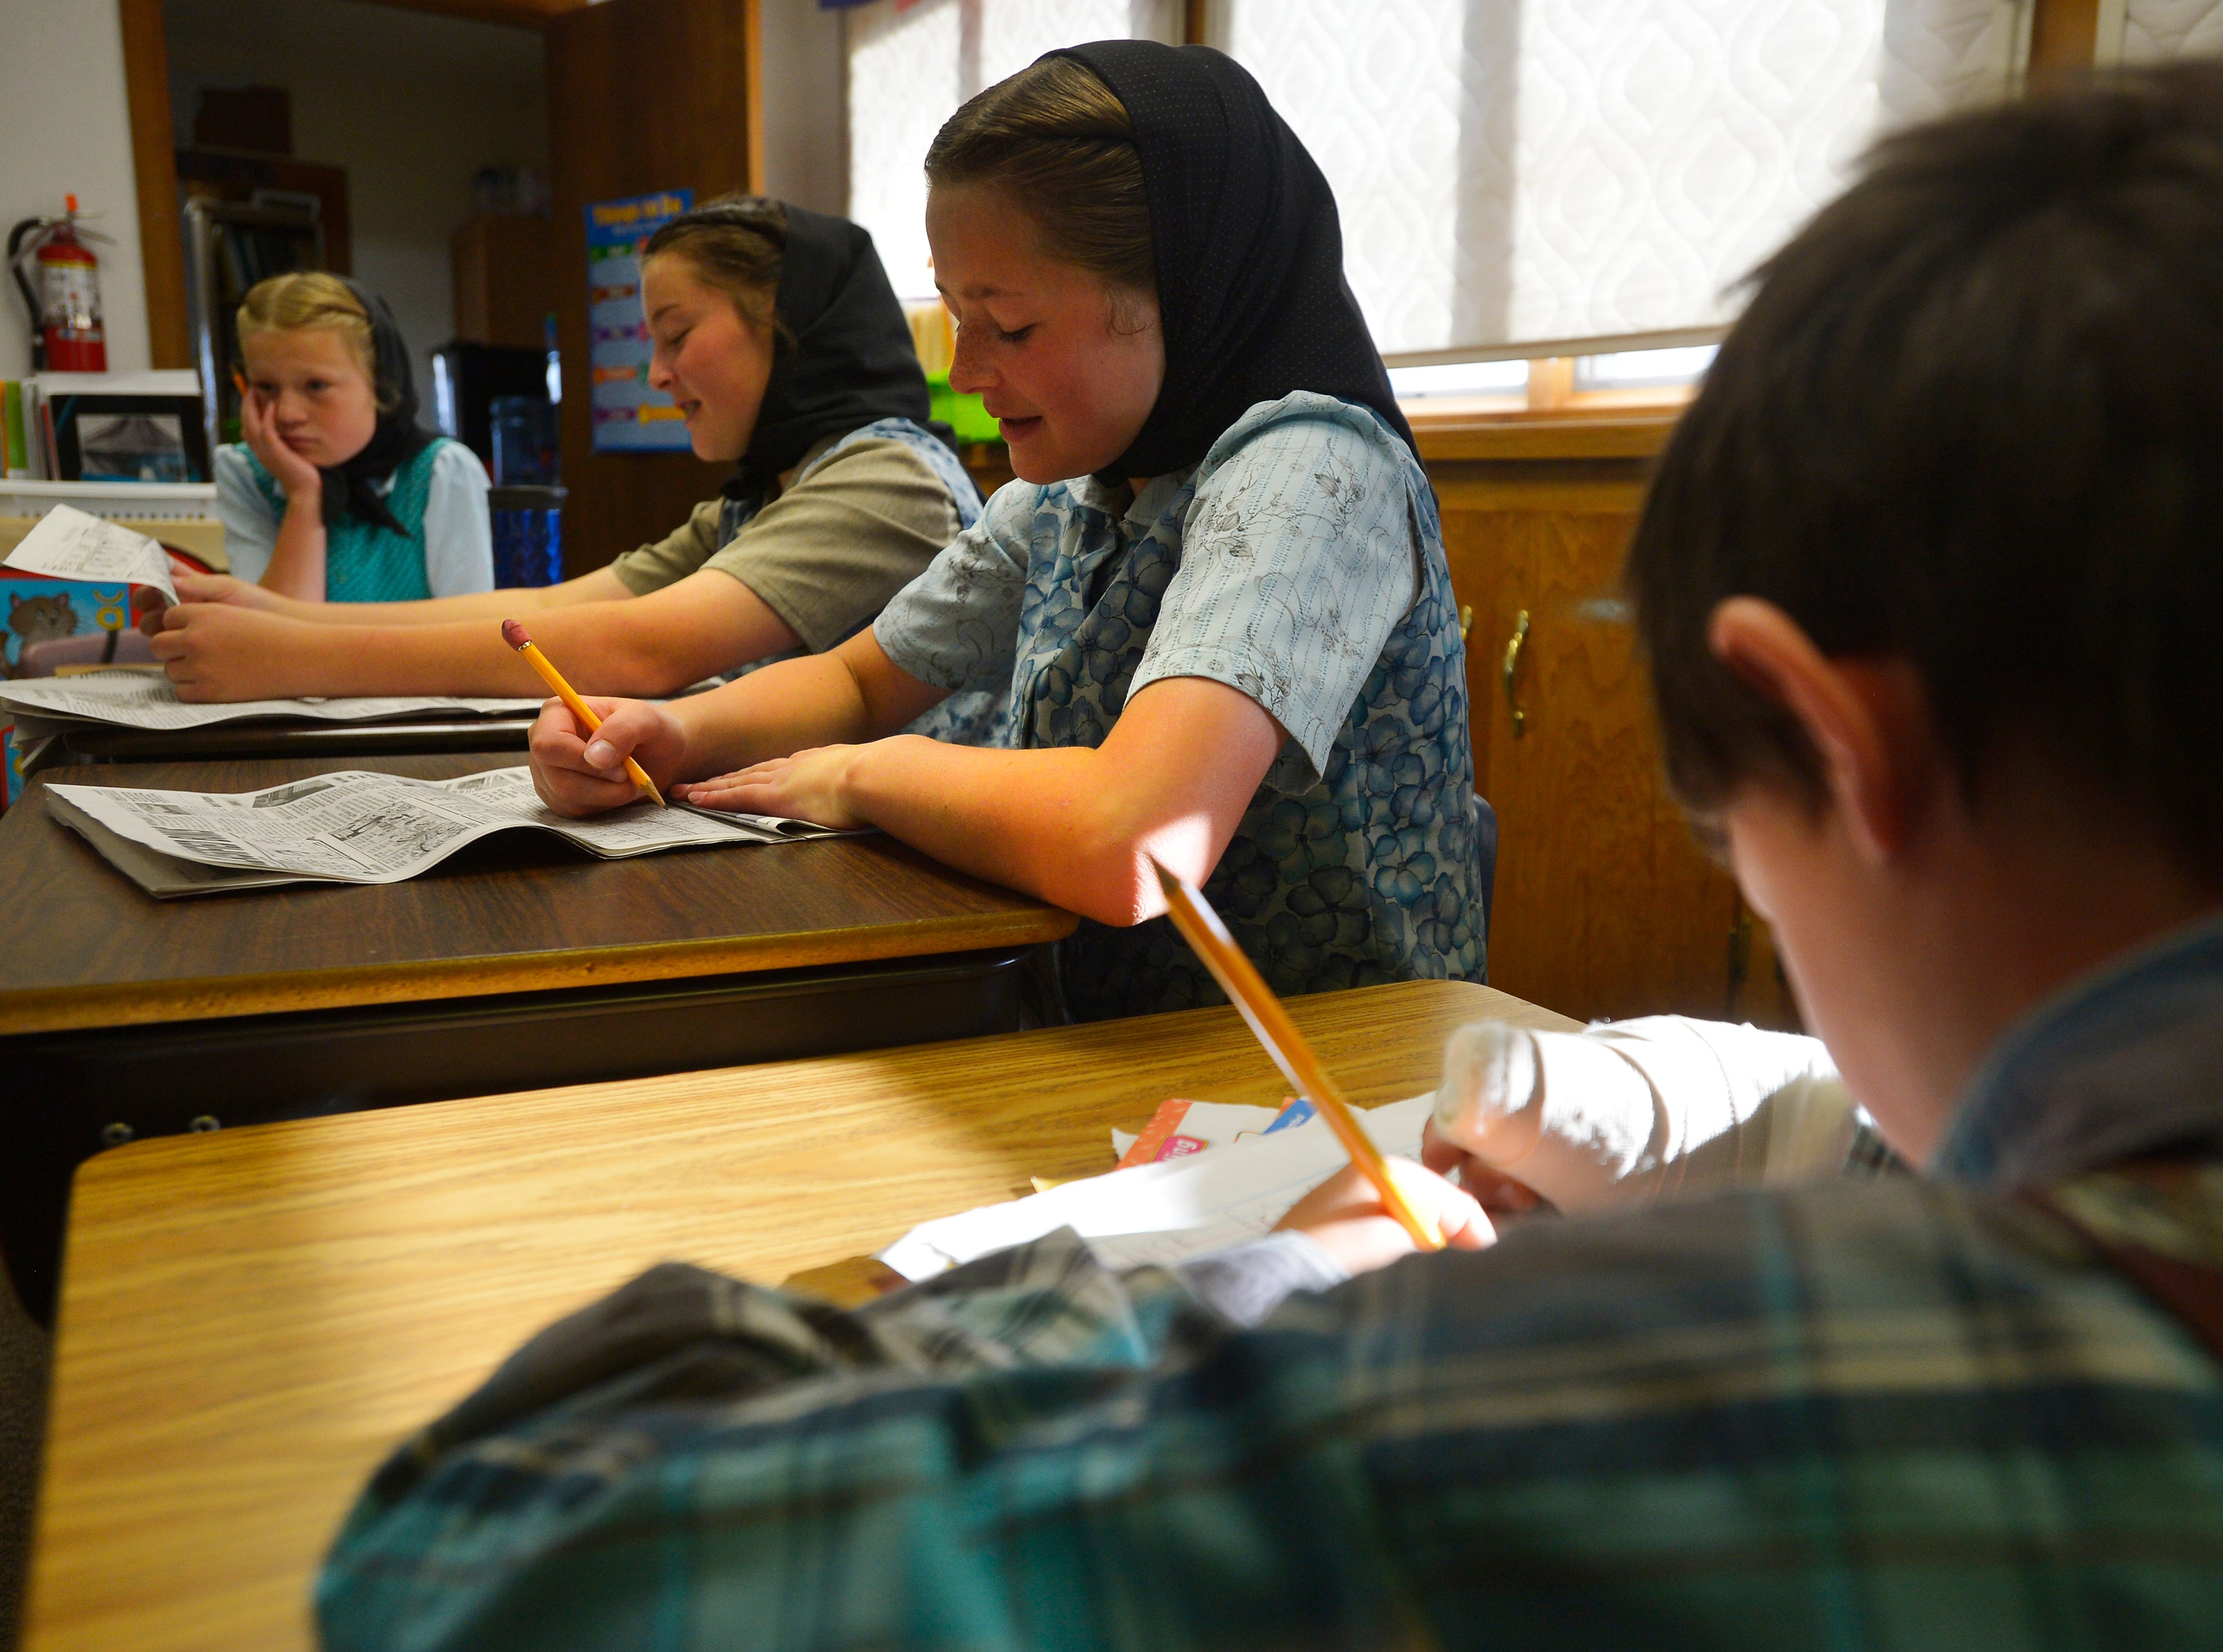 8:35 am:  Traci Manseau's students work at their desks, Monday, Sept. 17, 2018.  Manseau is a teaching veteran of 23 years and she has spent her entire career teaching in one room rural school houses.  She is currently teaching 15 students across seven different grade levels at the Deerfield Hutterite Colony in North Central Montana's Fergus County.